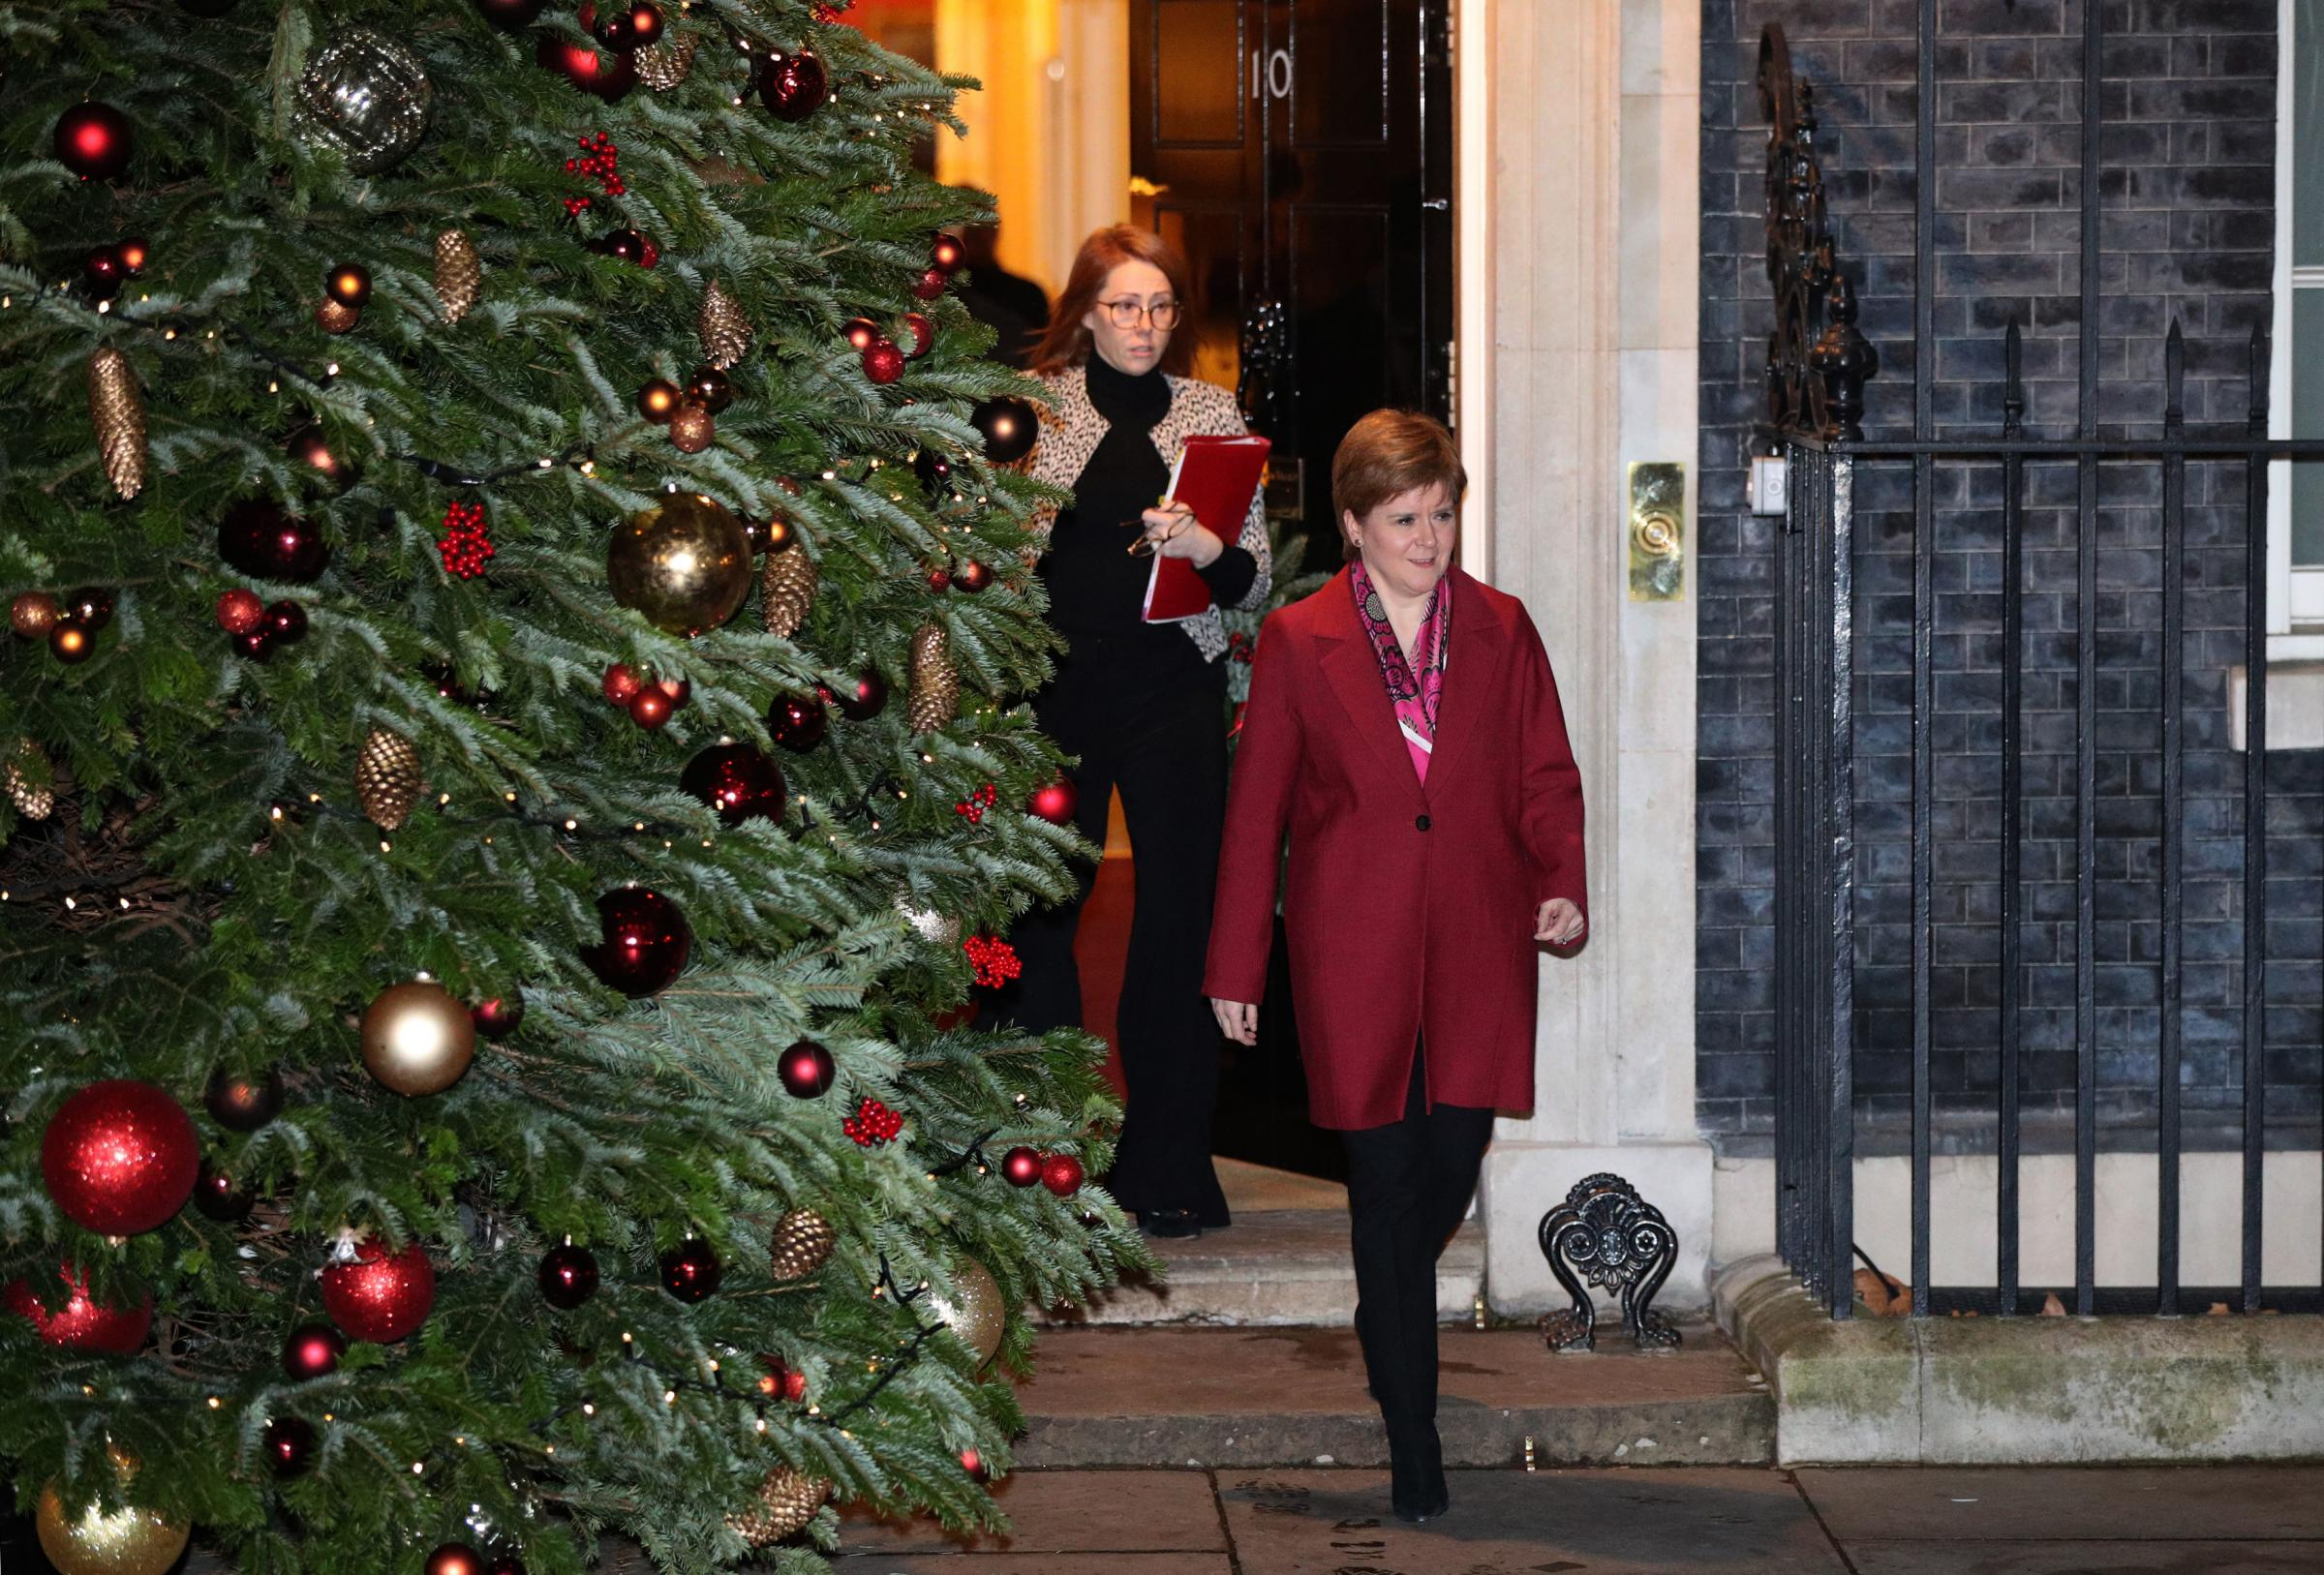 Nicola Sturgeon tells UK Government 'to start acting in the interests of the people it serves'